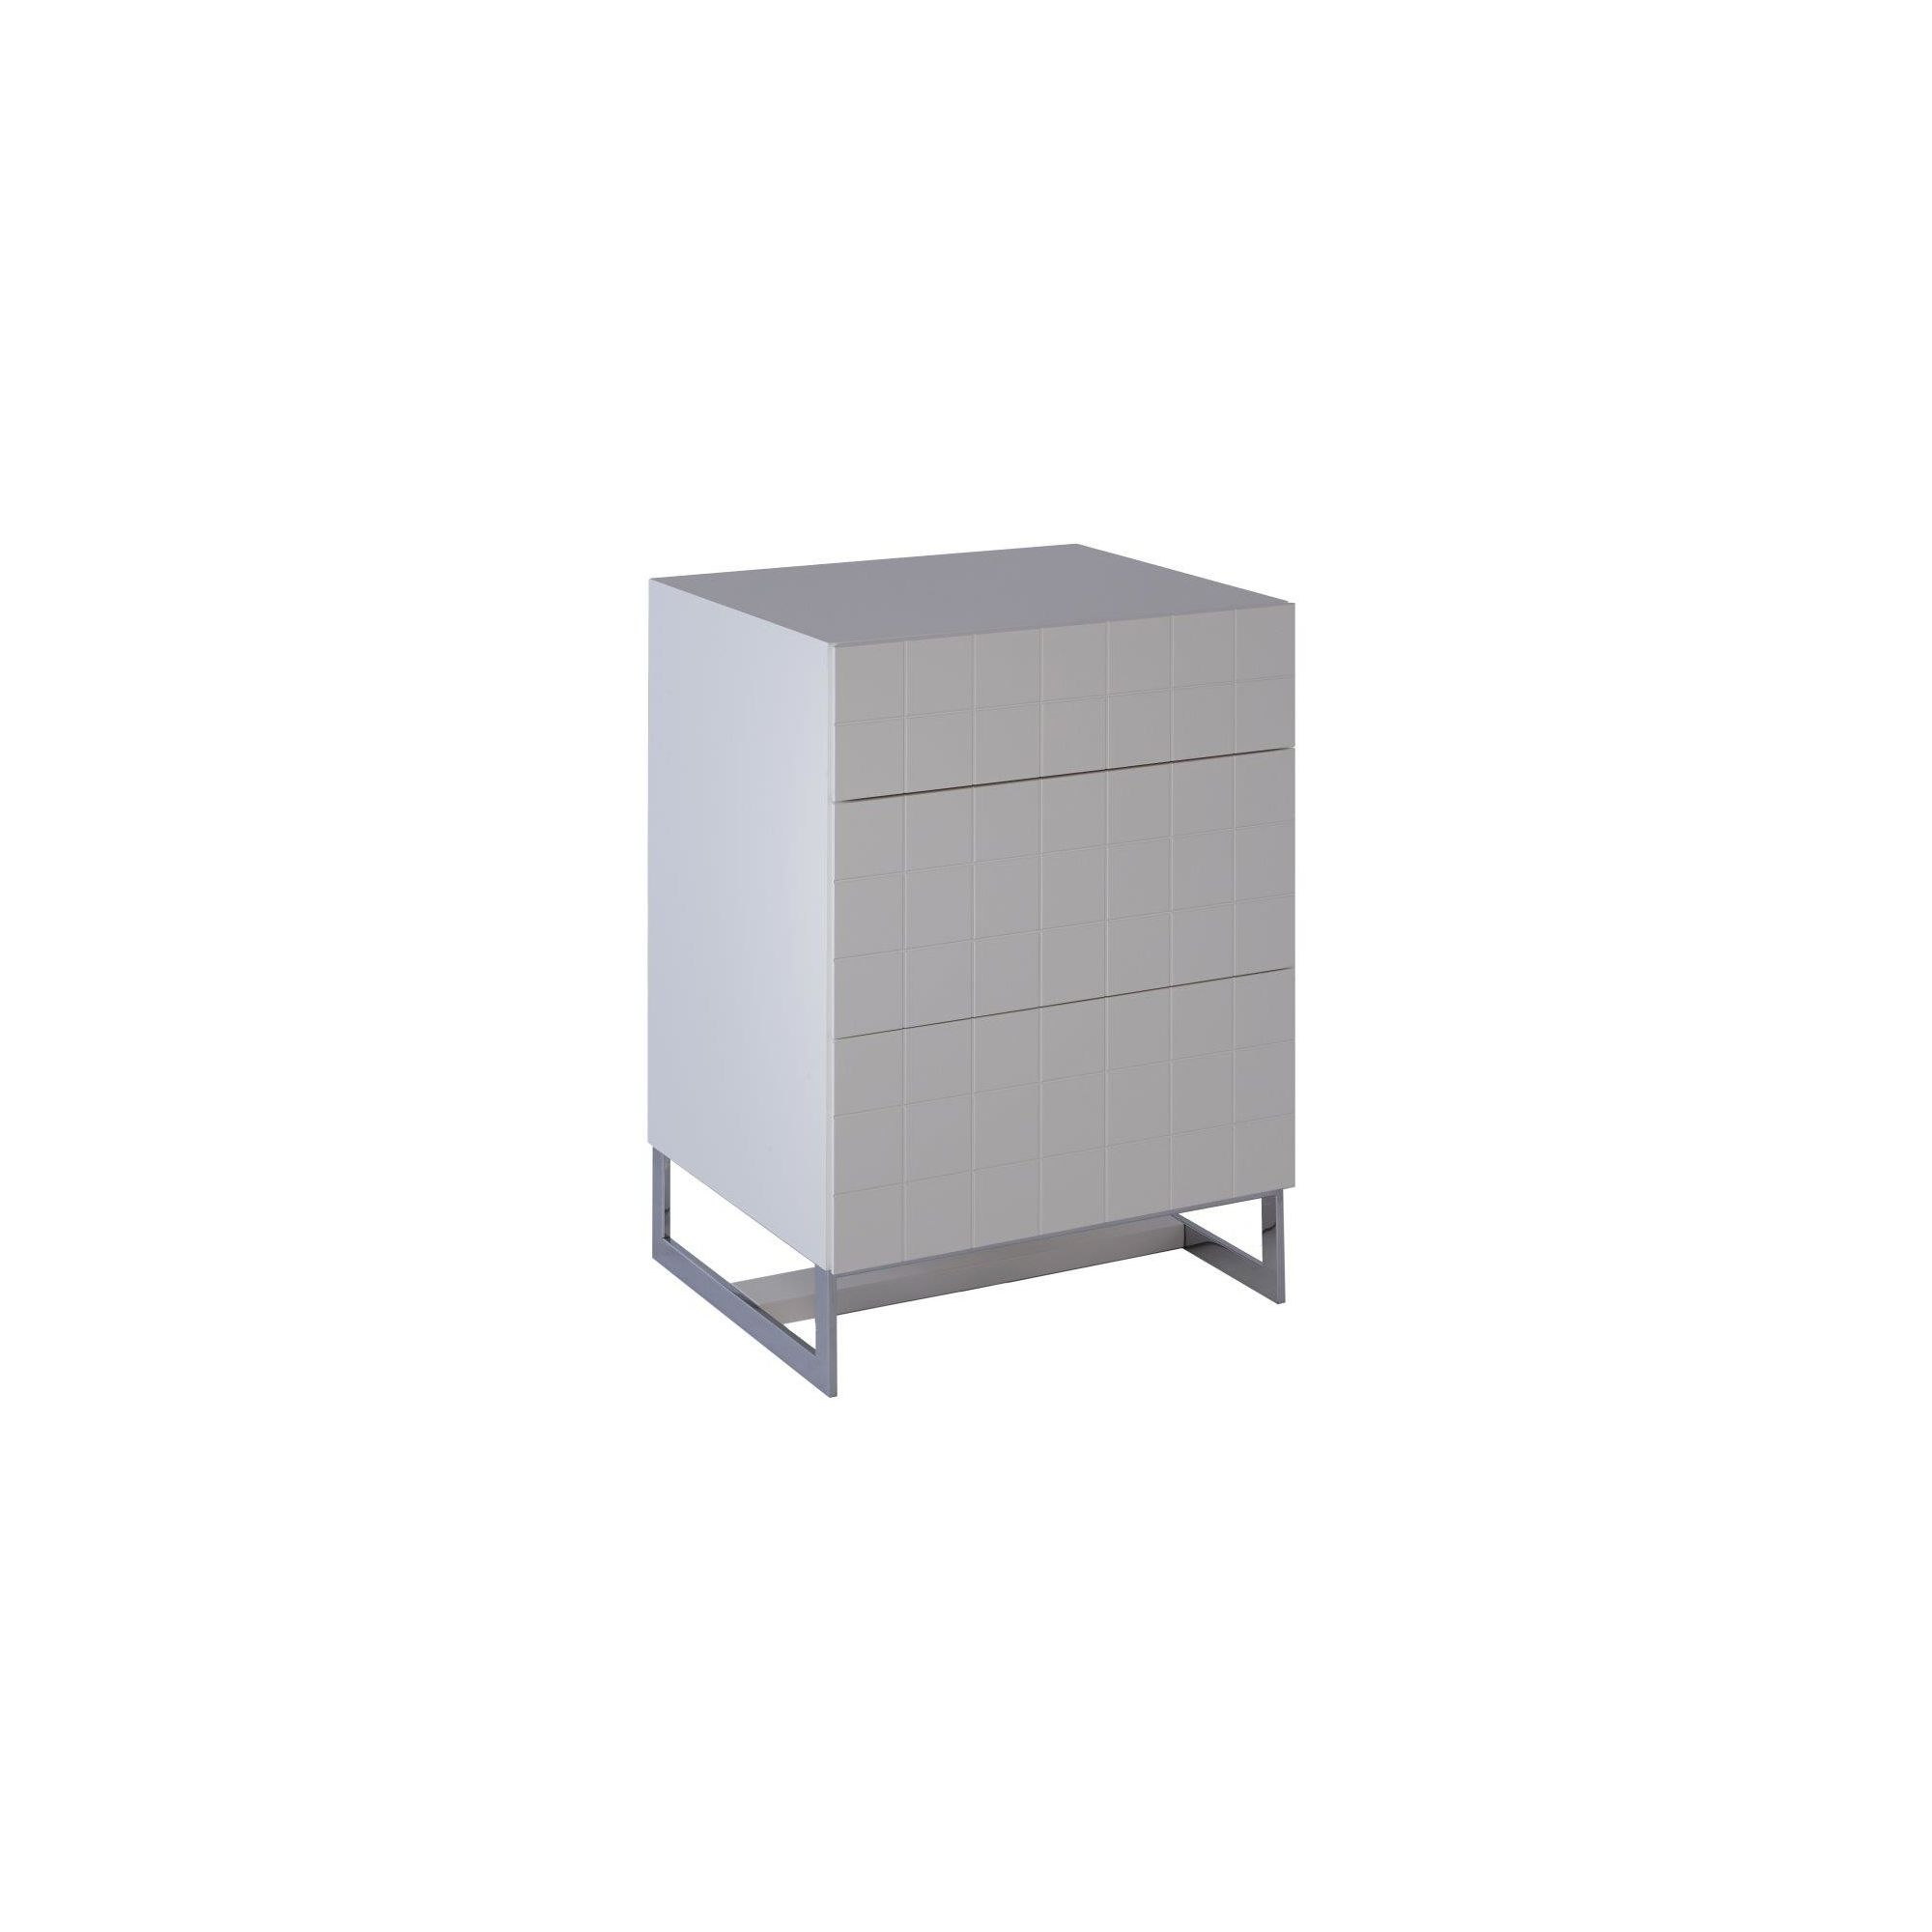 Gillmore Space Barcelona 3 Drawer Chest - White Lacquer (Matt) at Tesco Direct